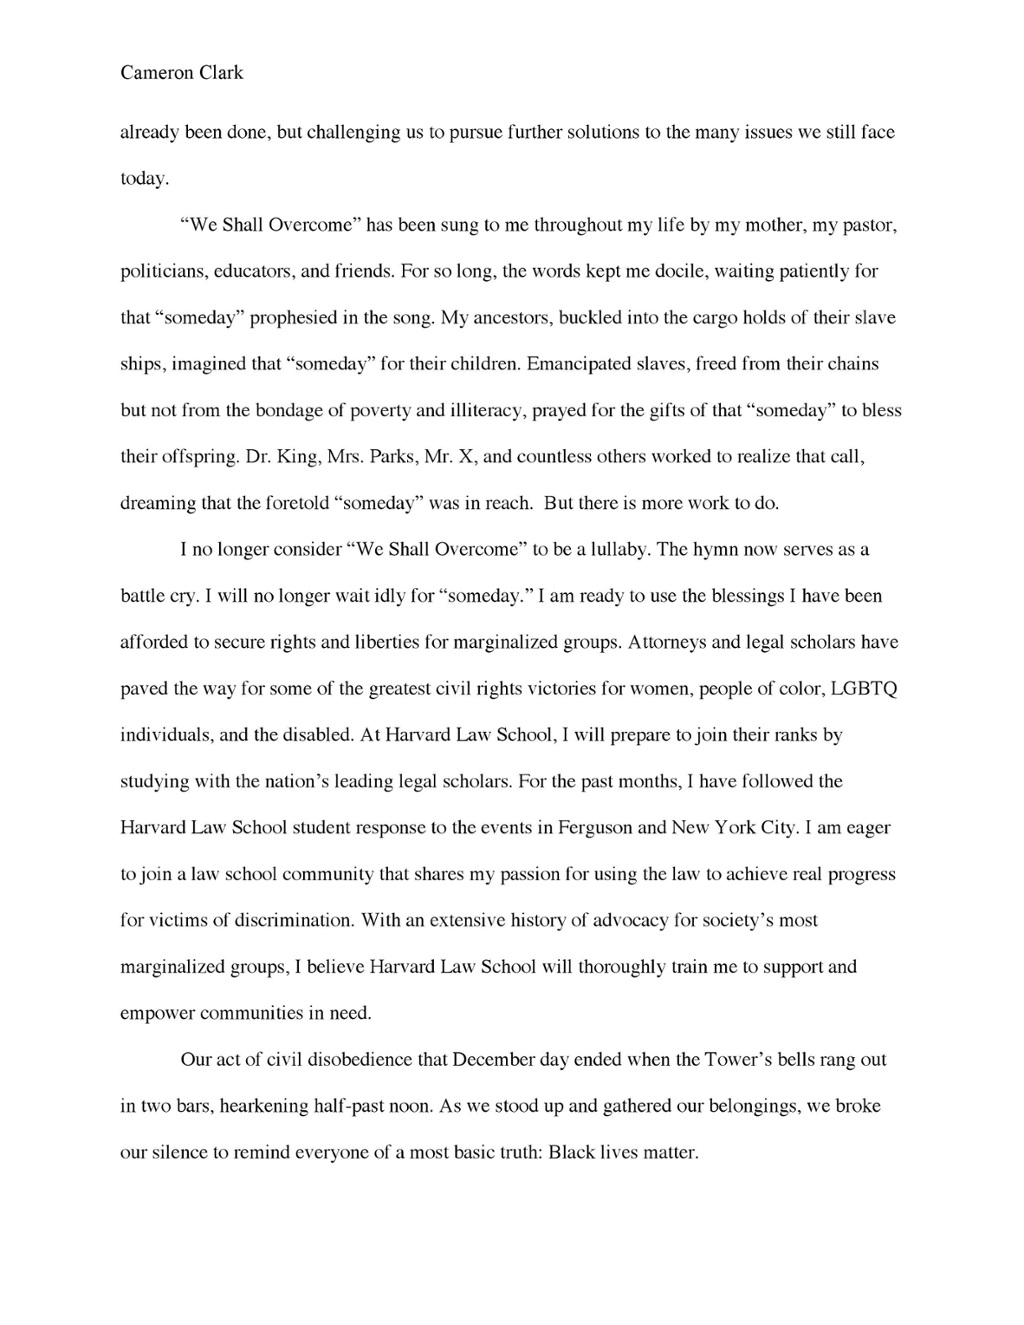 how to write an application essay for high school admissions blog  law school personal statements that succeeded top law schools law school  personal statements that succeeded top